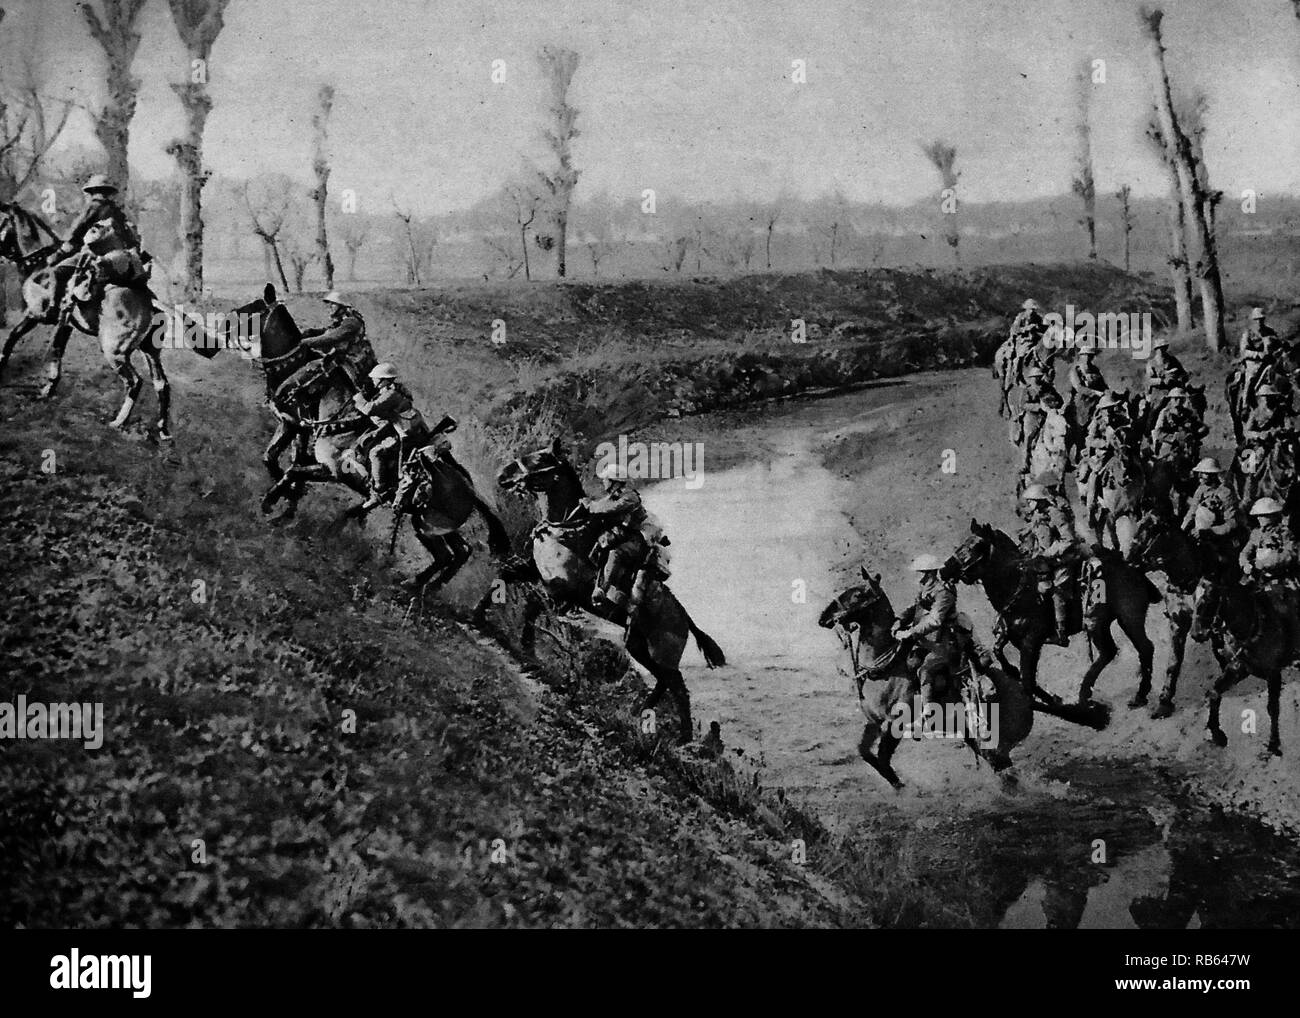 British cavalry charge across a river during World War One. - Stock Image